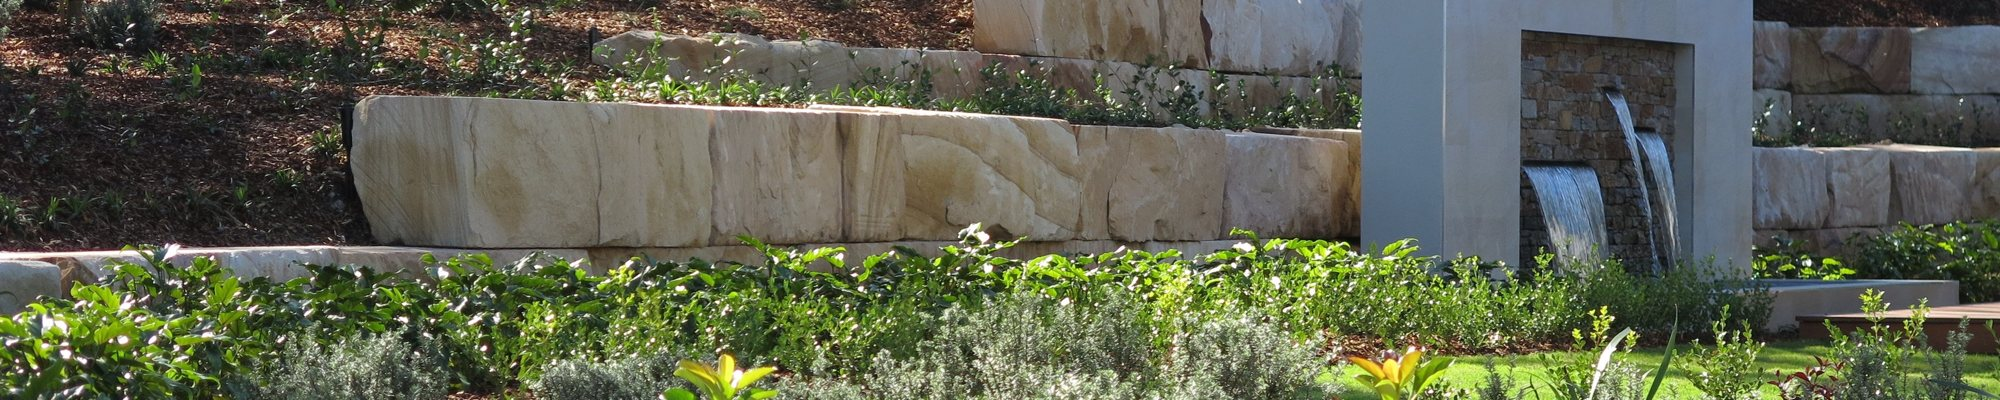 Novascape constructed this large sandstone log wall for McDonald Jones homes